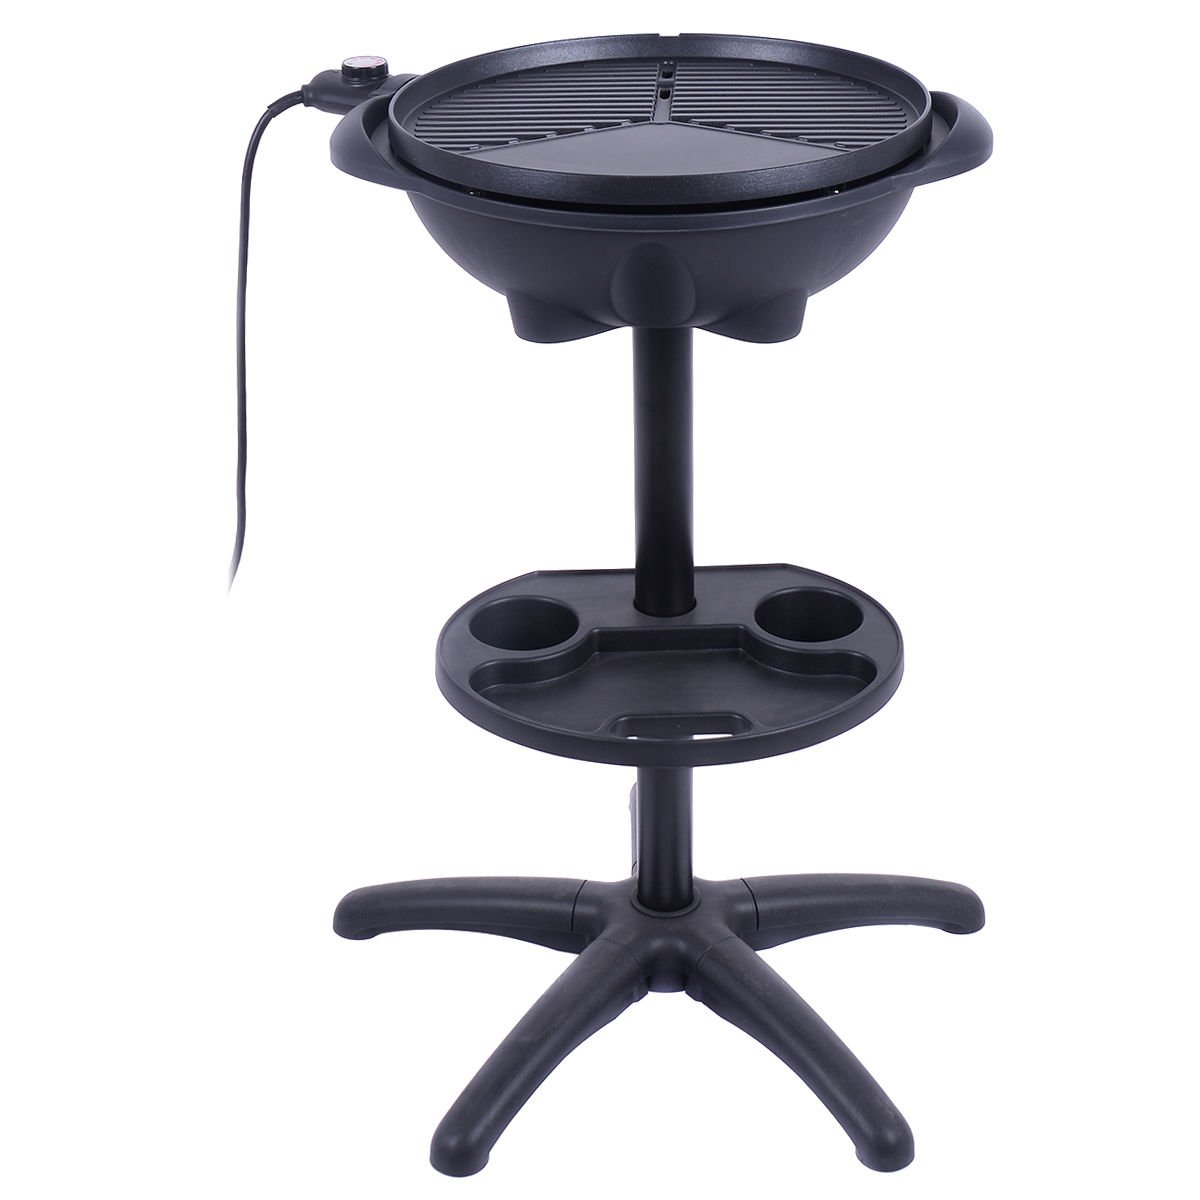 New Electric BBQ Grill 1350W Non-stick 4 Temperature Setting Outdoor Garden Camping by totoshop (Image #3)